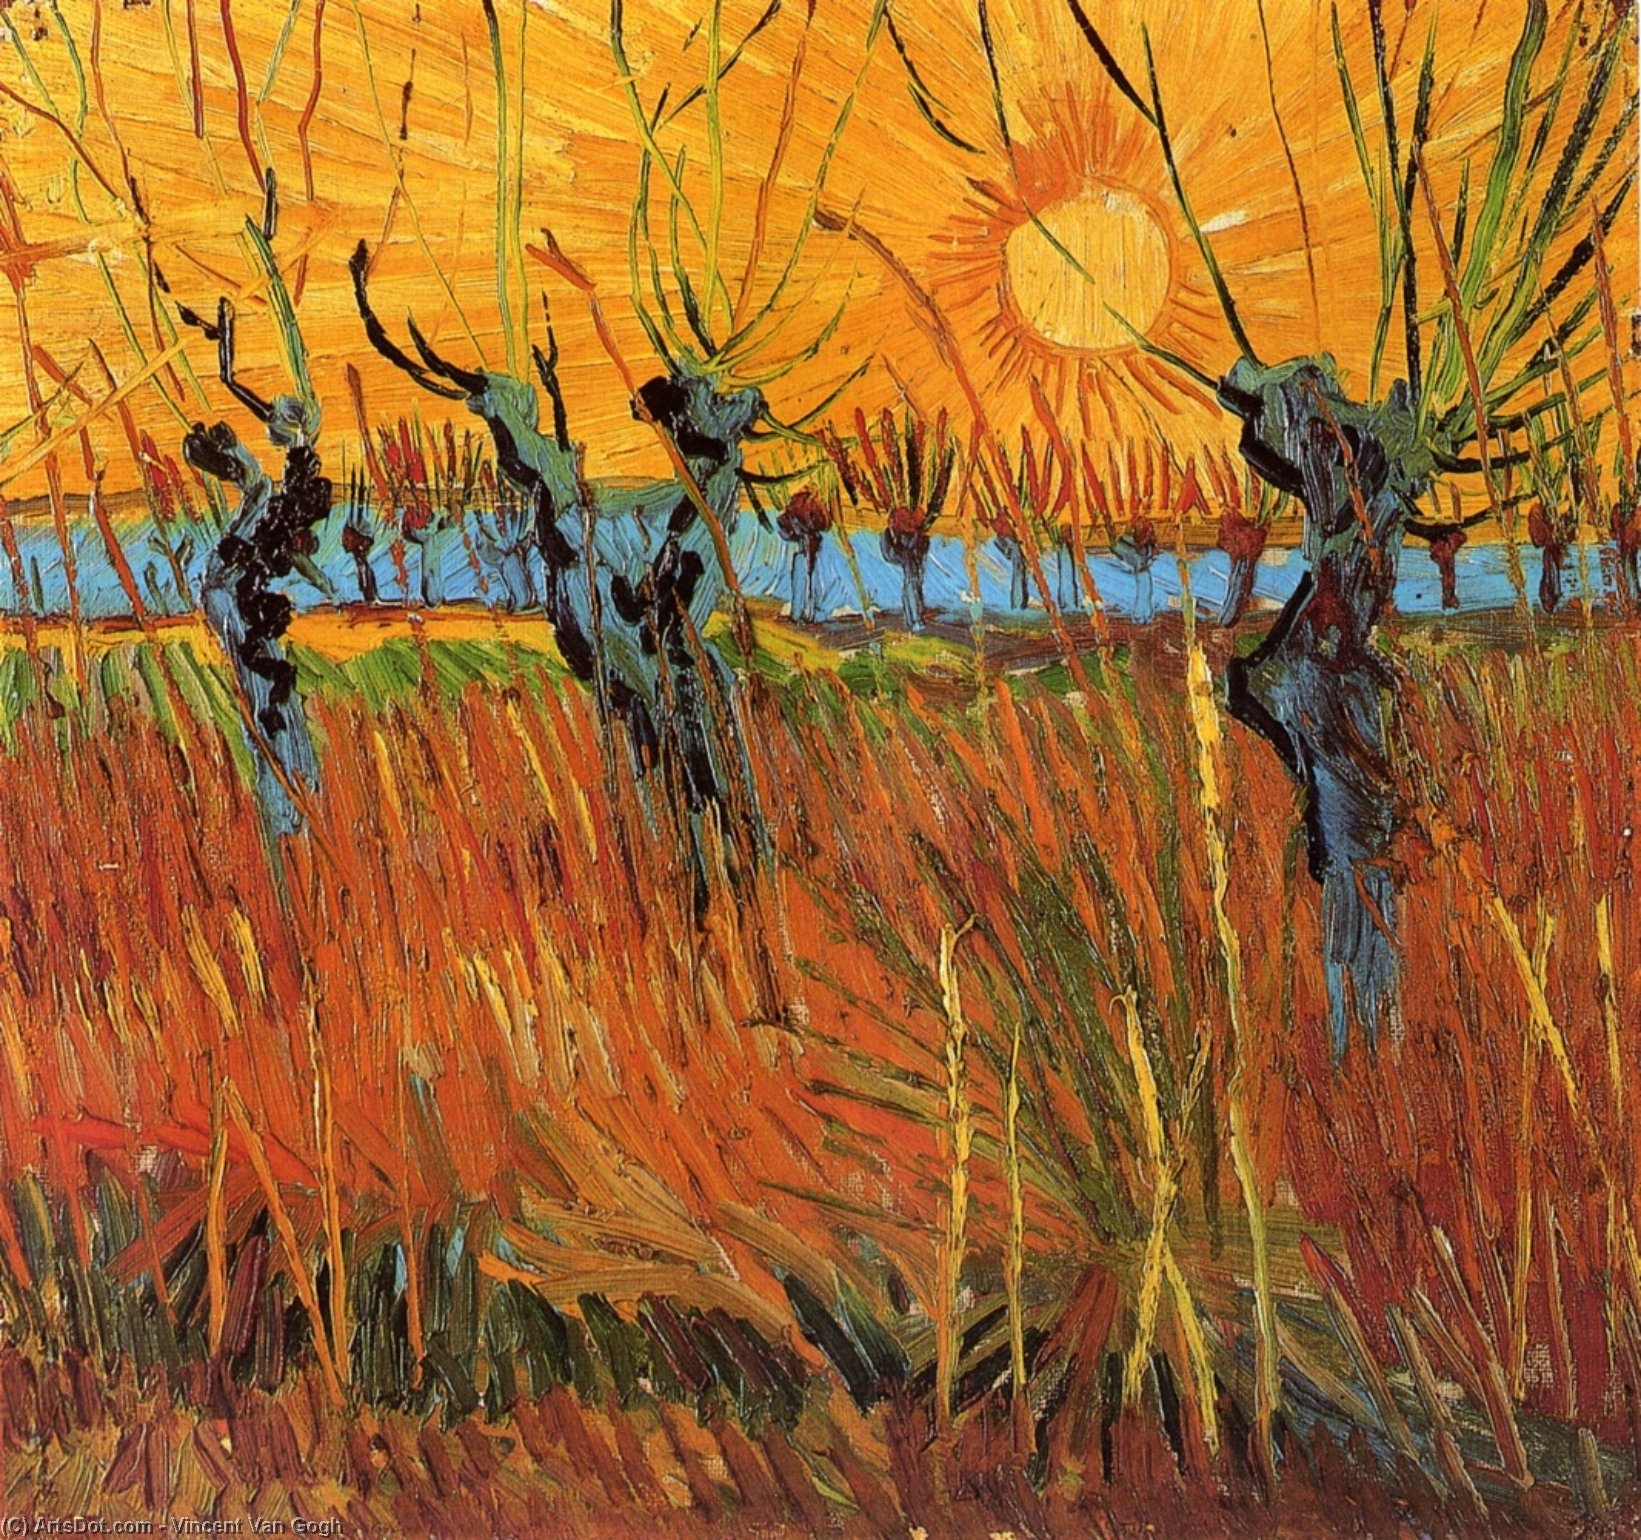 Wikioo.org - The Encyclopedia of Fine Arts - Painting, Artwork by Vincent Van Gogh - Willows at Sunset